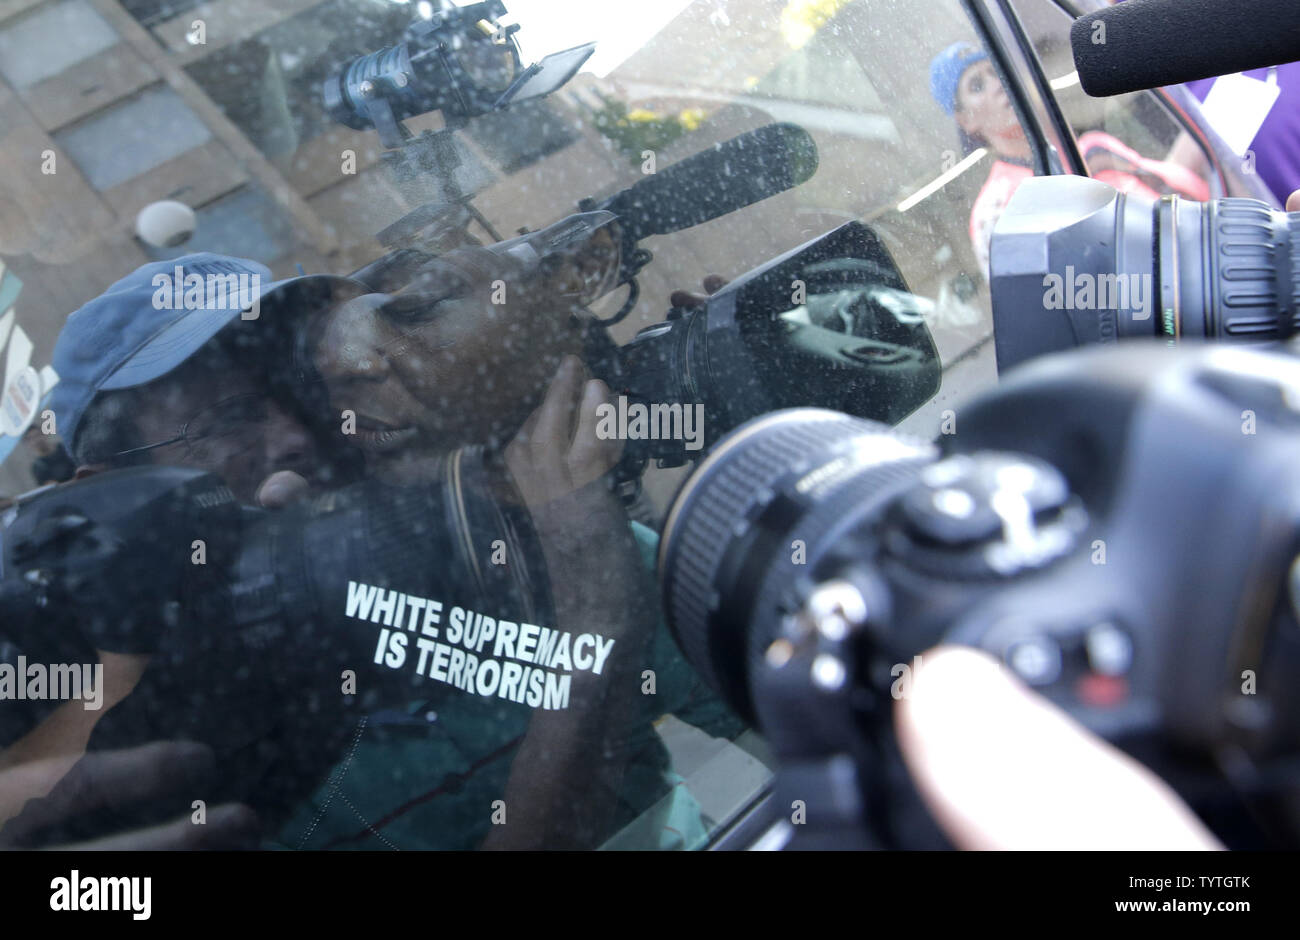 Statue Of Liberty climber and Rise and Resist protester Therese Okoumou waits for the car to depart after she exits Court with supporters in New York City on July 5, 2018 in New York City. The woman who partially climbed up the Statue of Liberty on July 4th Independence Day and prompted authorities to evacuate Liberty Island was released without bail, and if convicted would face up to six months behind bars.    Photo by John Angelillo/UPI Stock Photo